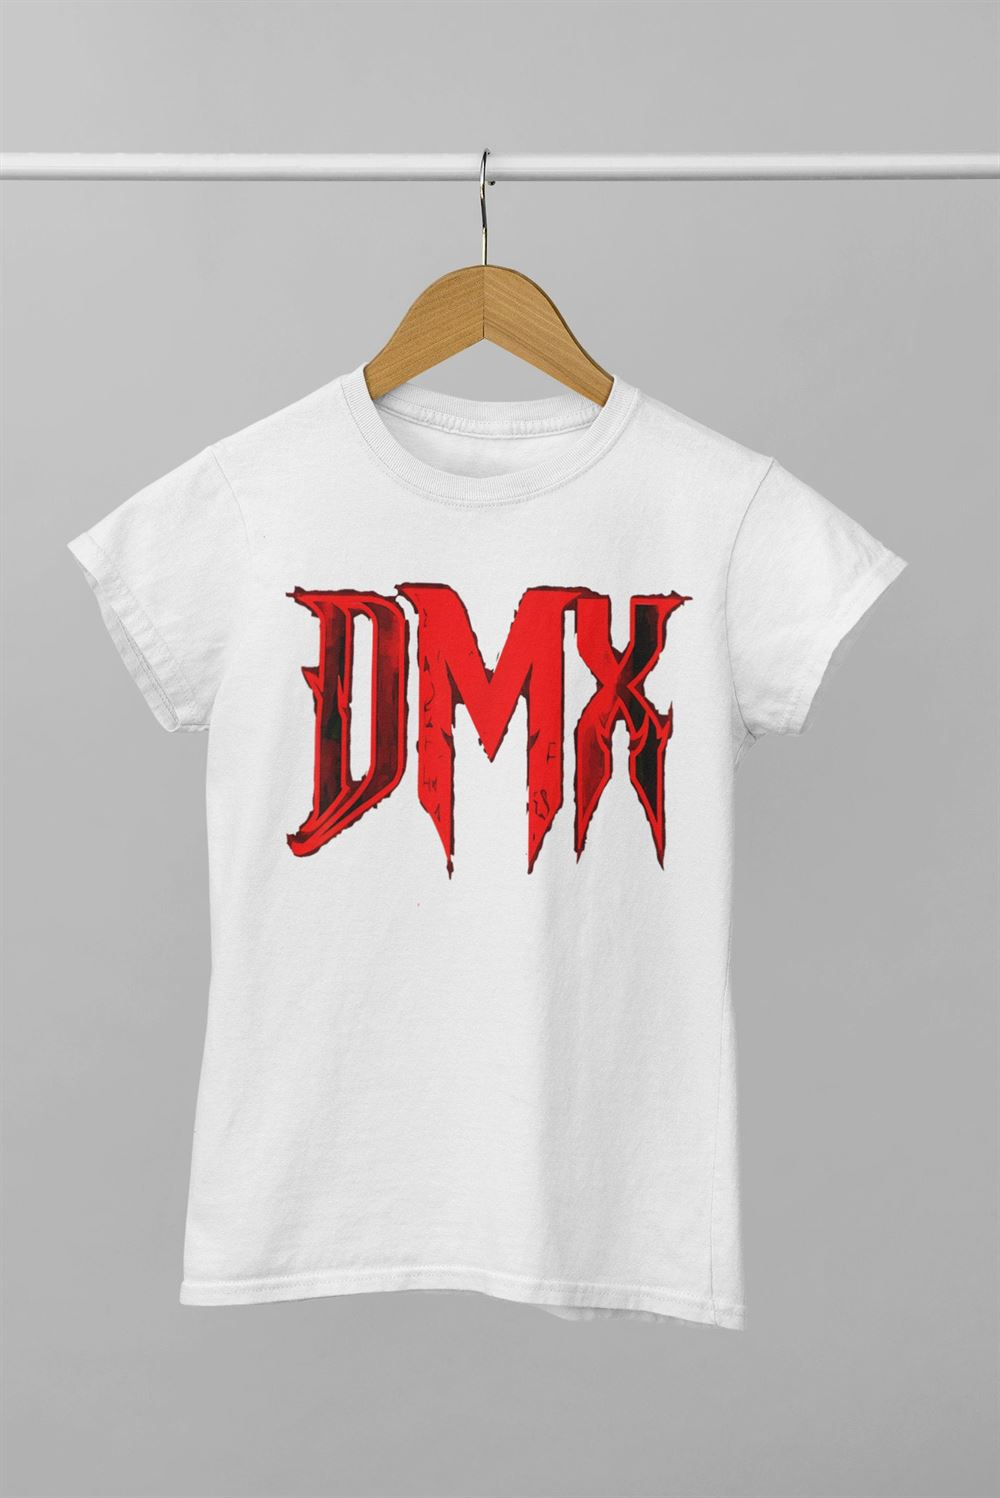 Dmx X Gon Give It To Ya T-shirt Dmx Shirt X Gon Give It To Ya Shirt Dm